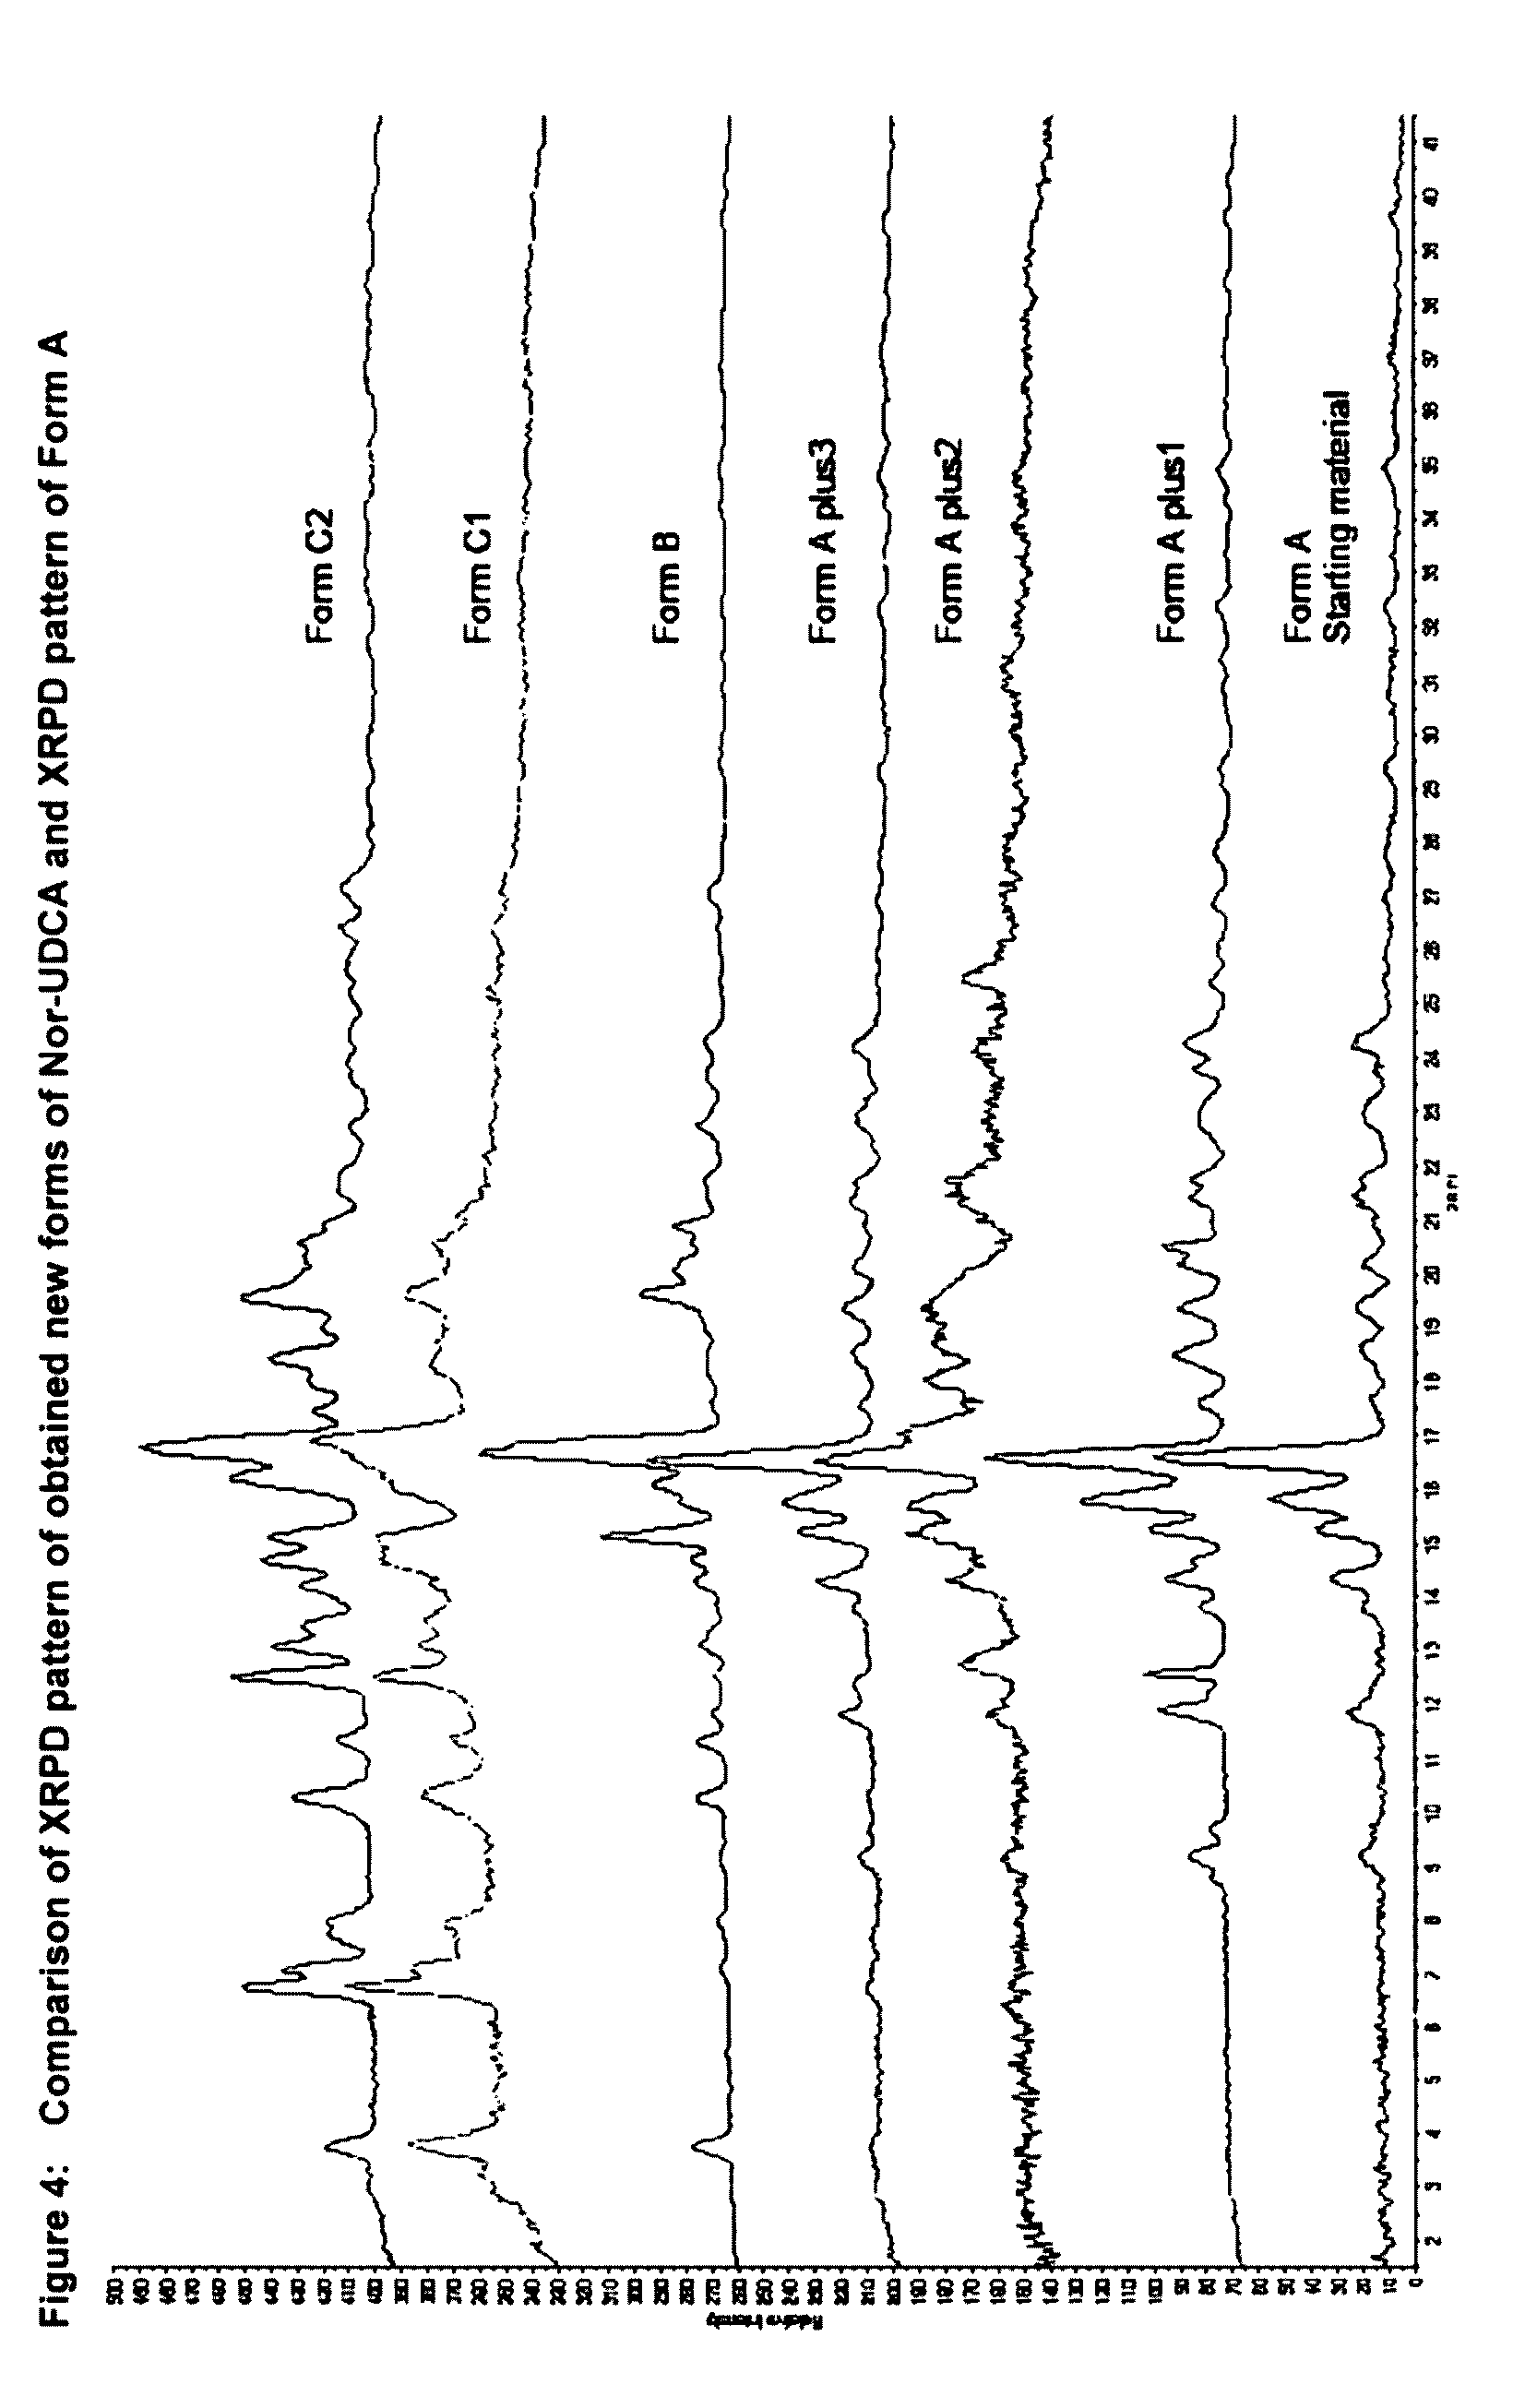 US9512167B2 - Optimized synthesis of pure, non-polymorphic